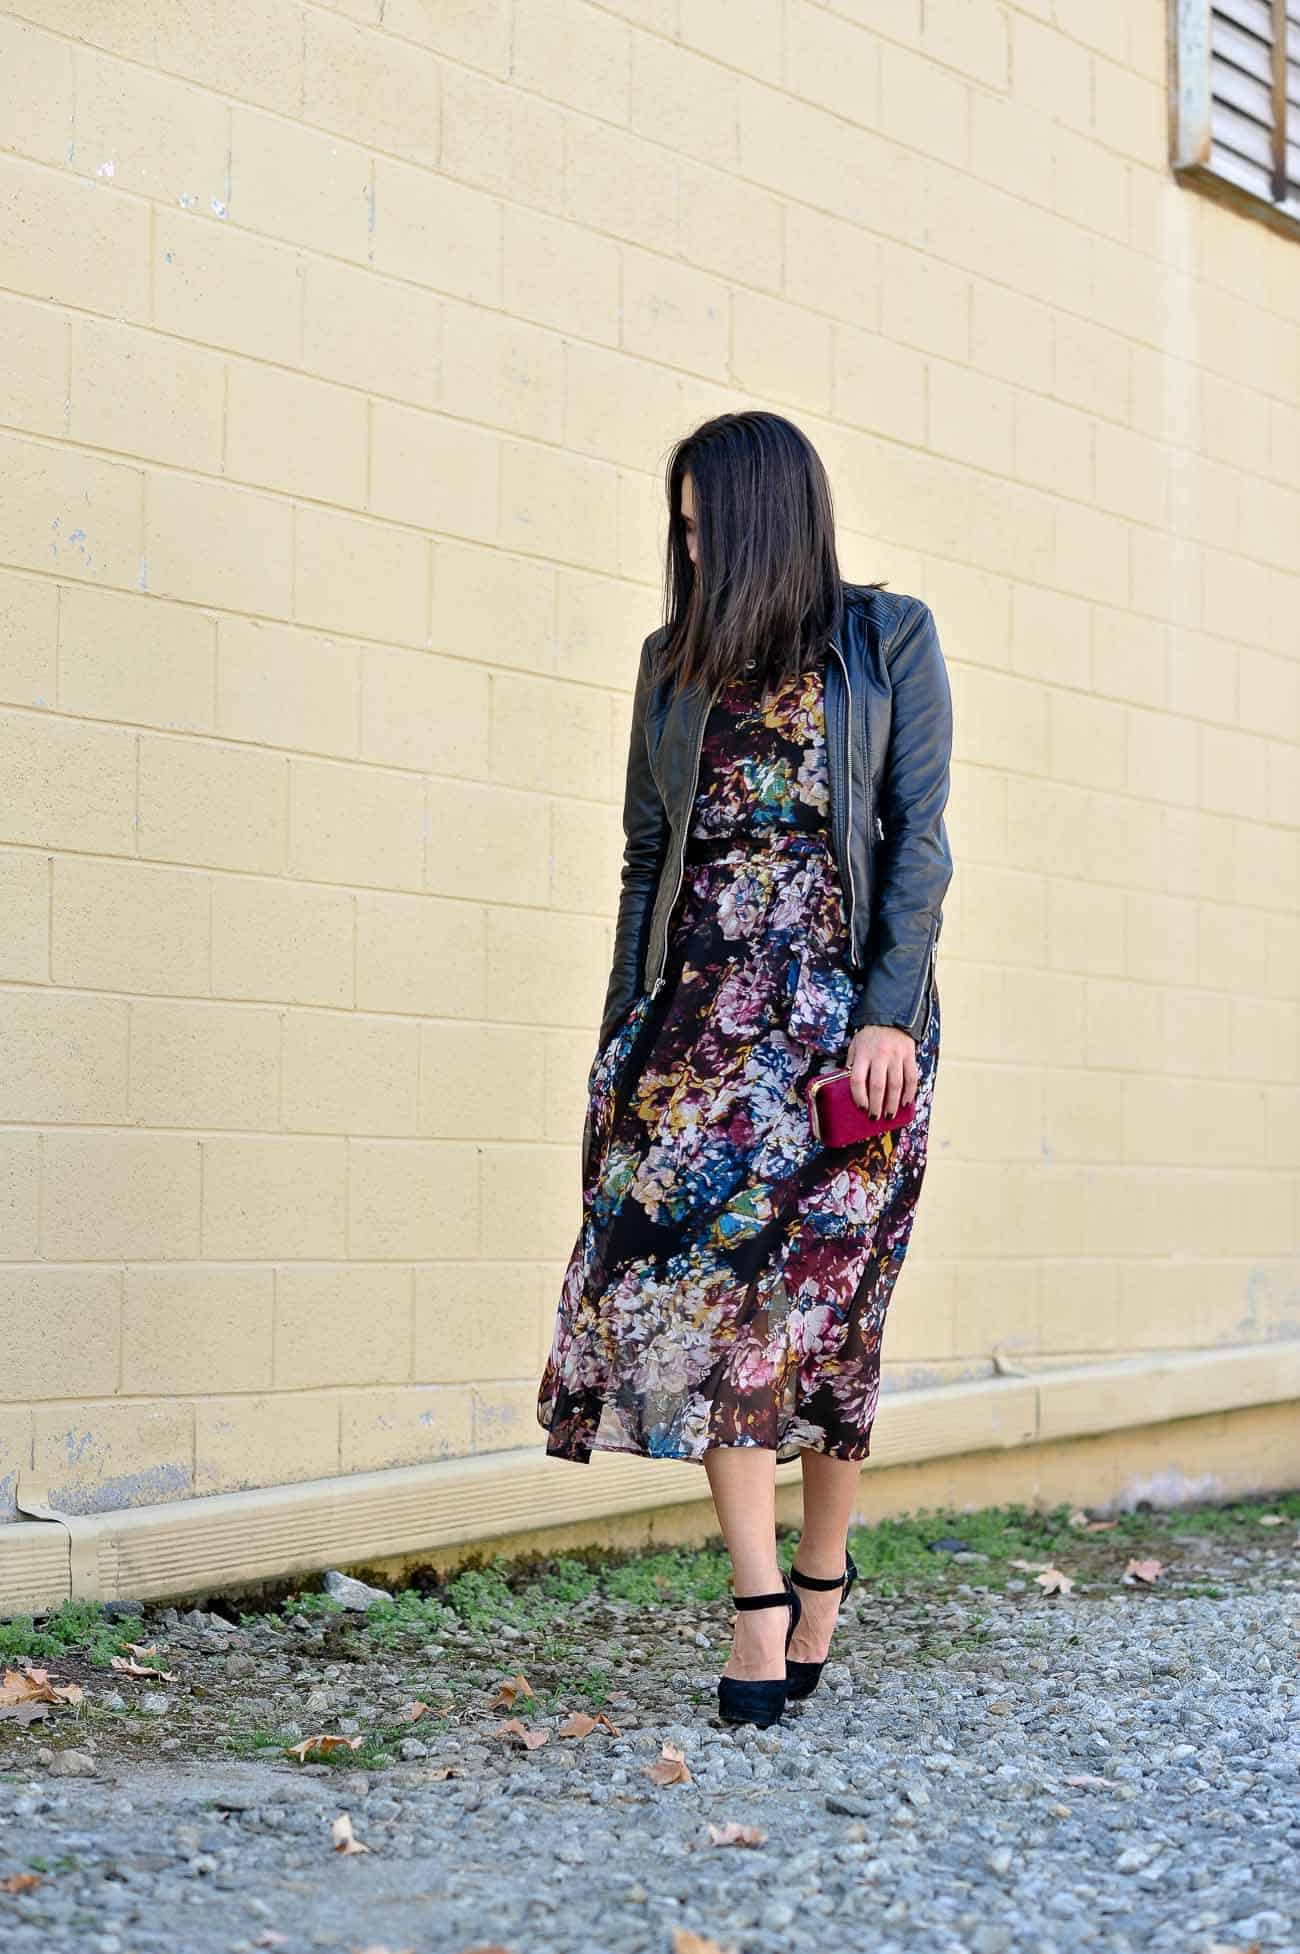 fall floral maxi dress - My Style Vita @mystylevita